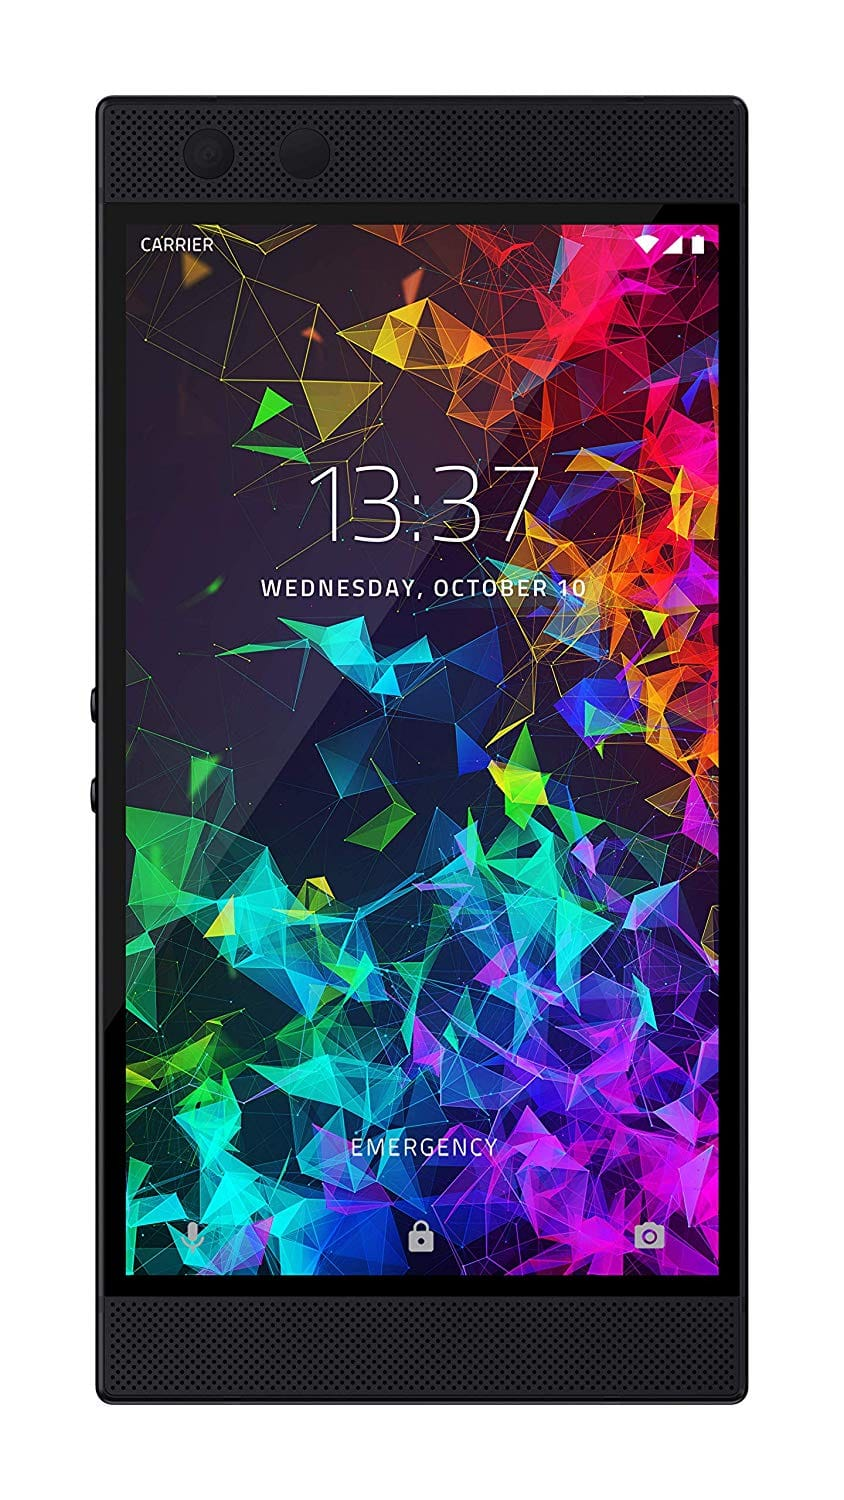 Razer Phone 2 - $449.99 after Verizon activation and $250 Prepaid Mastercard